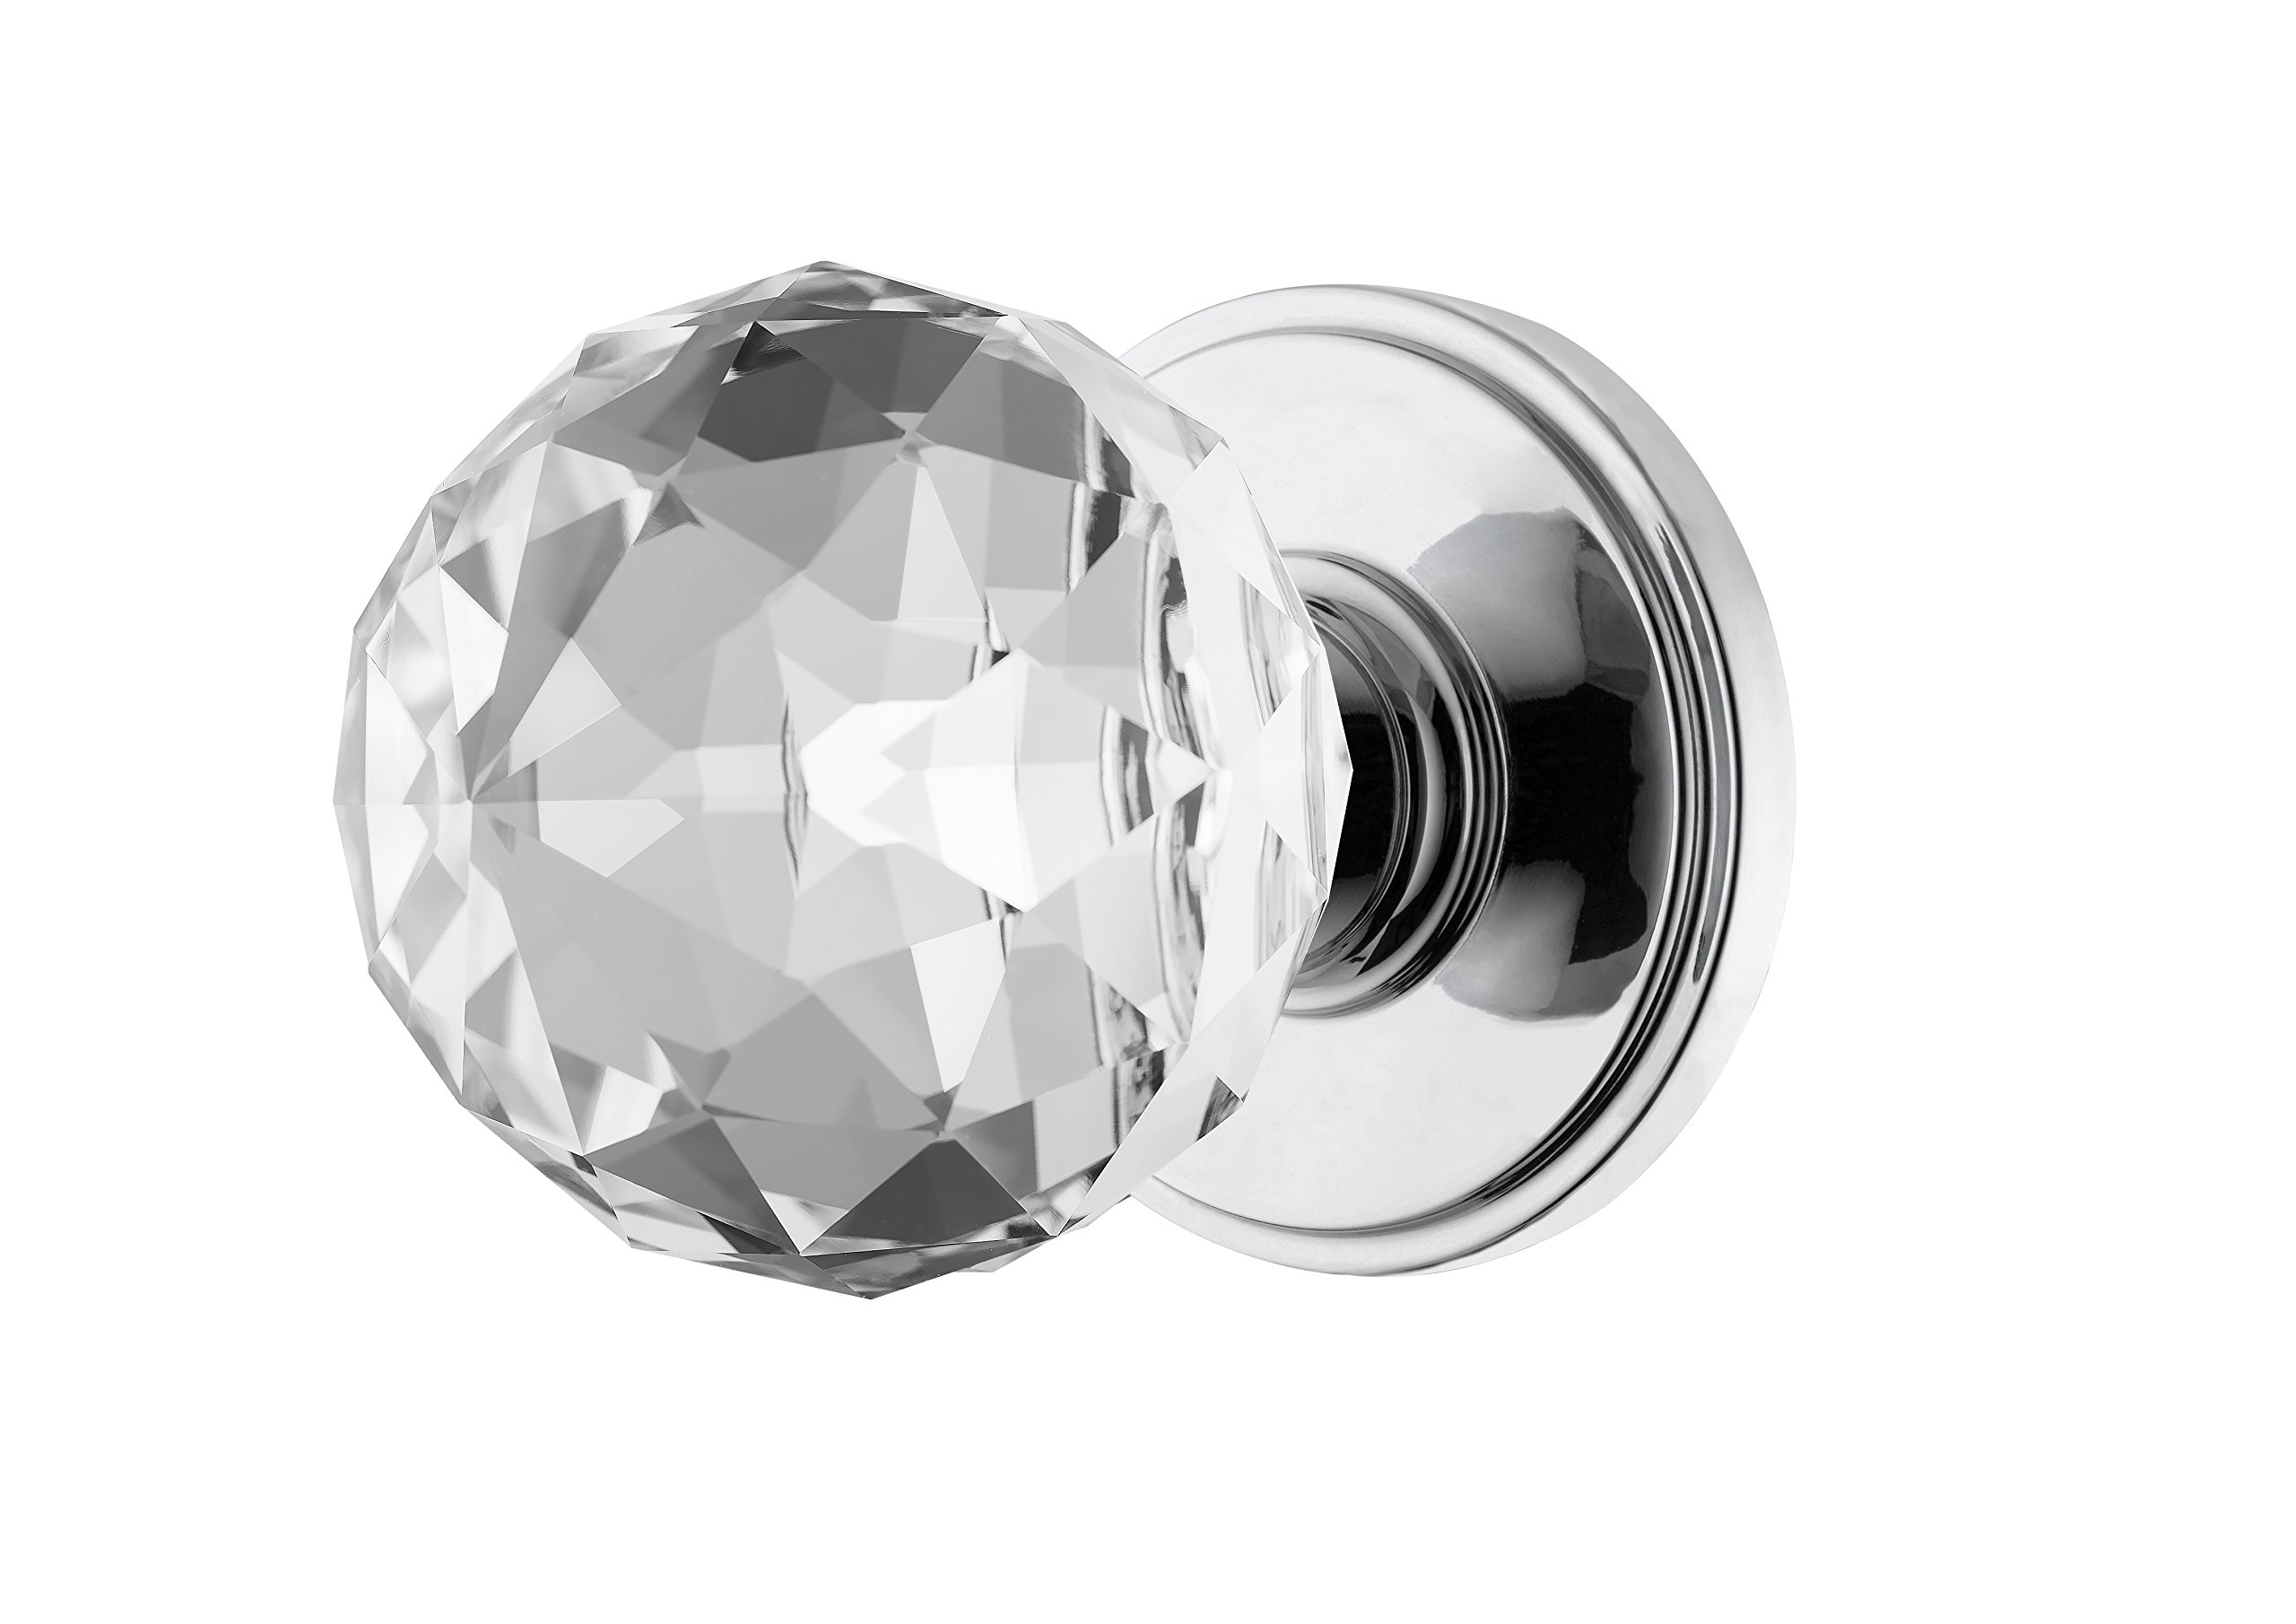 Decor Living, AMG and Enchante Accessories Faceted Crystal Door Knobs with Lock, Privacy Function for Bed and Bath, IRIS Collection, Polished Chrome by DECOR LIVING (Image #1)